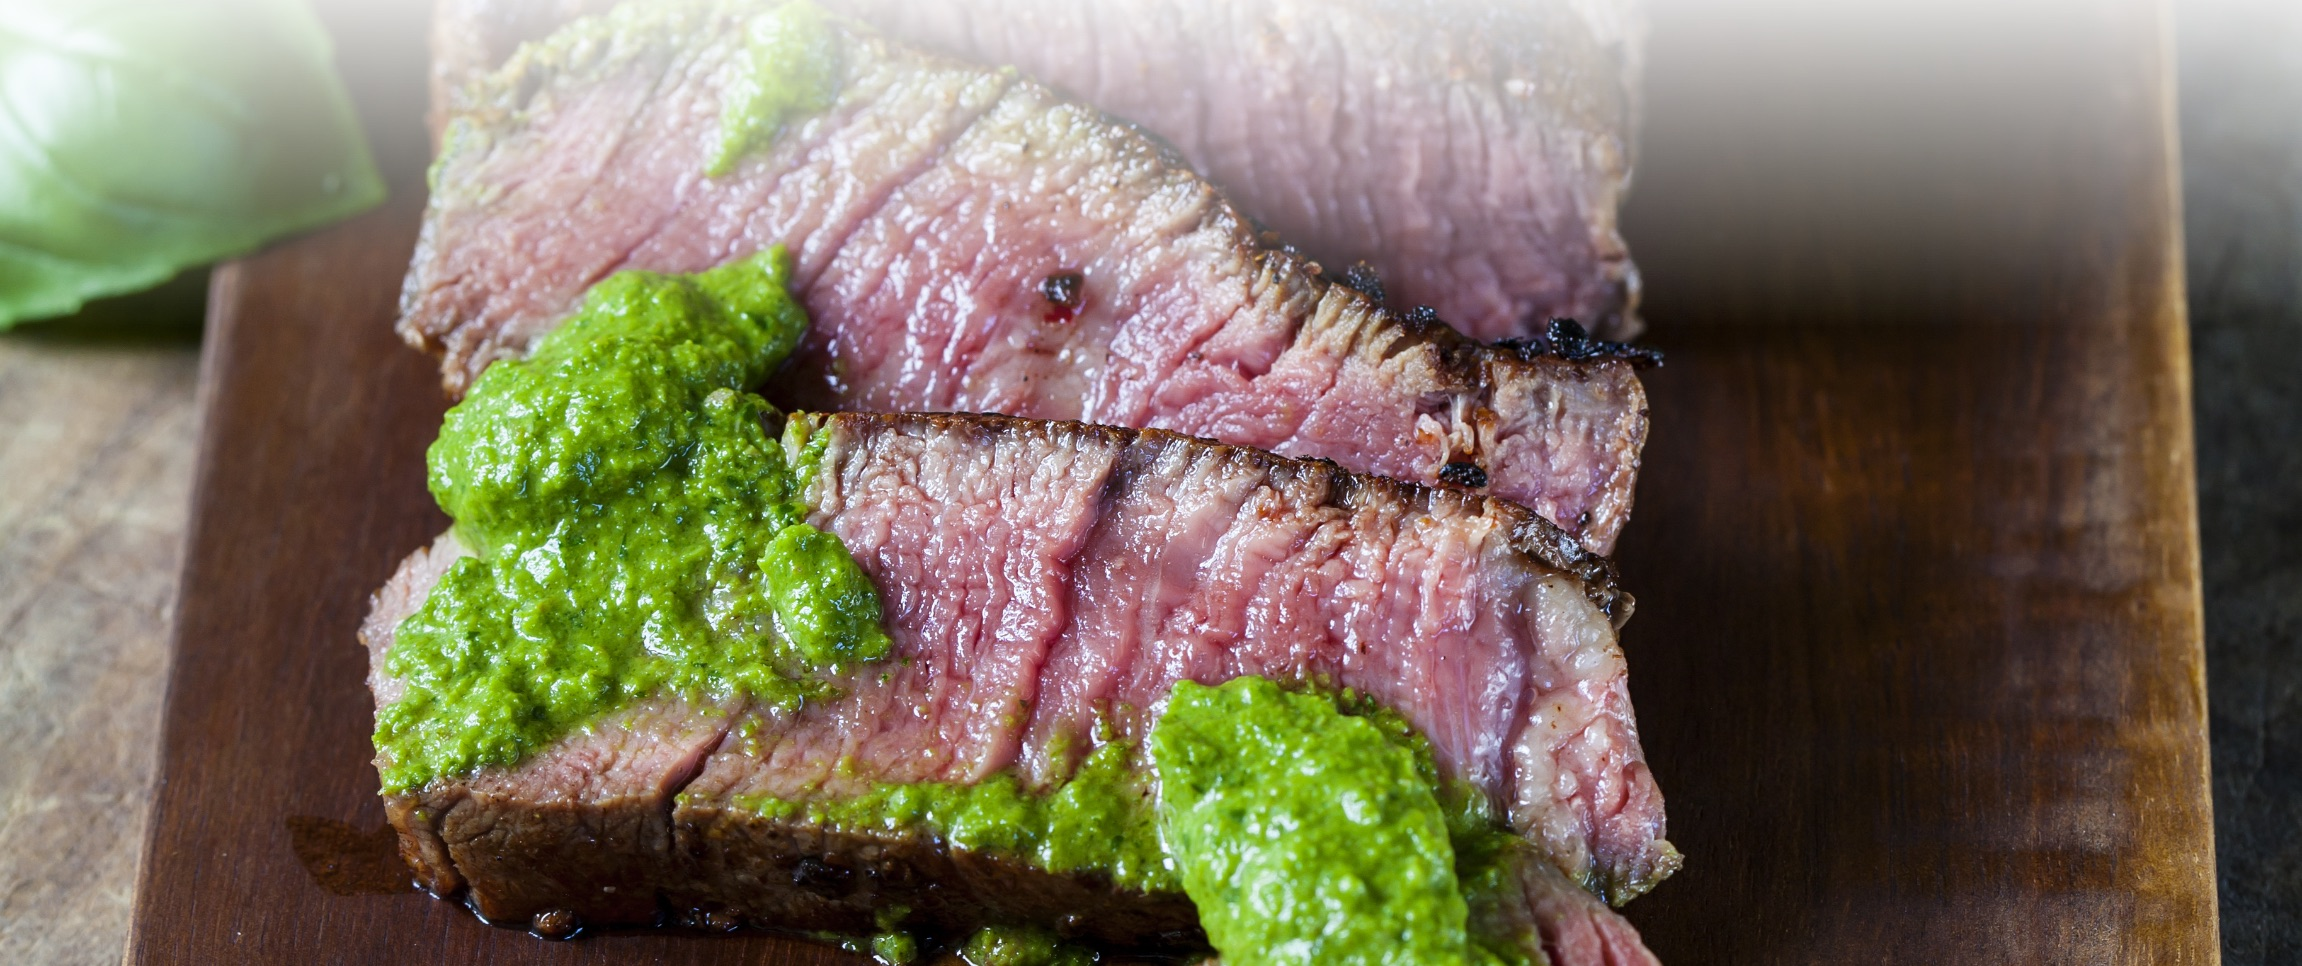 Grilled Rib Eye with Cilantro Green Chili Aioli